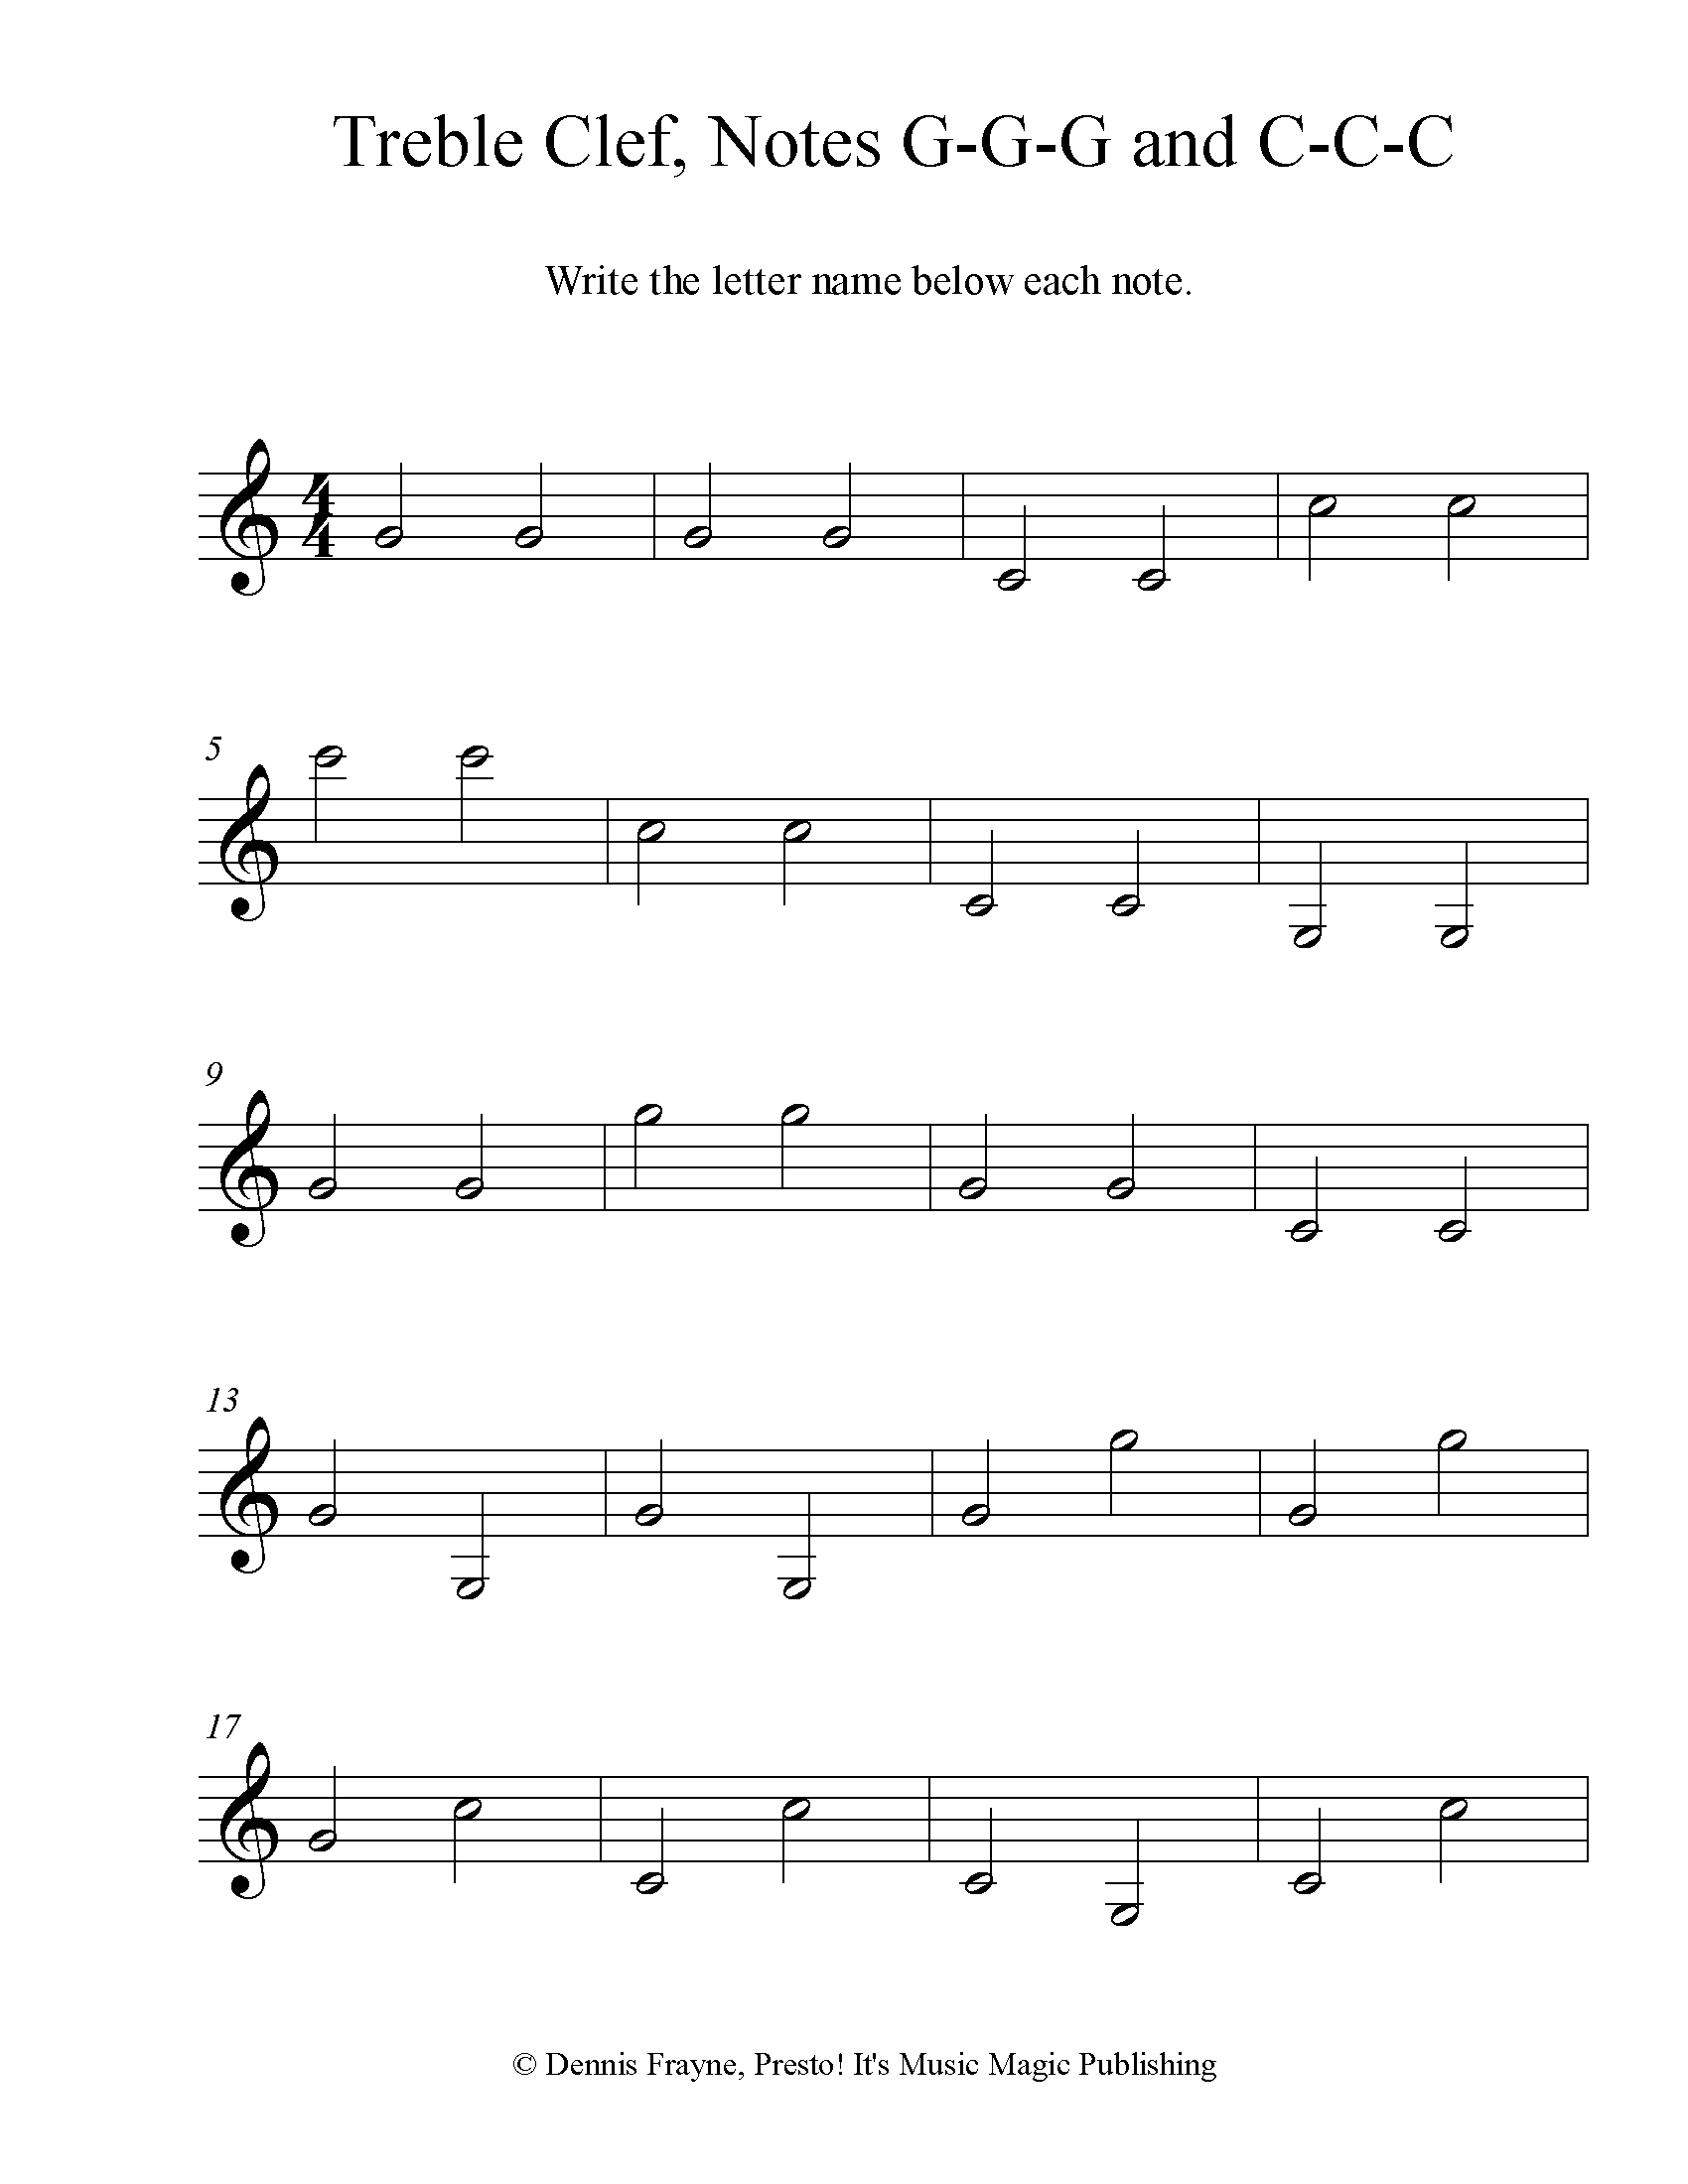 Treble Clef Note Identification Practice Worksheet, Level 4 4 pages